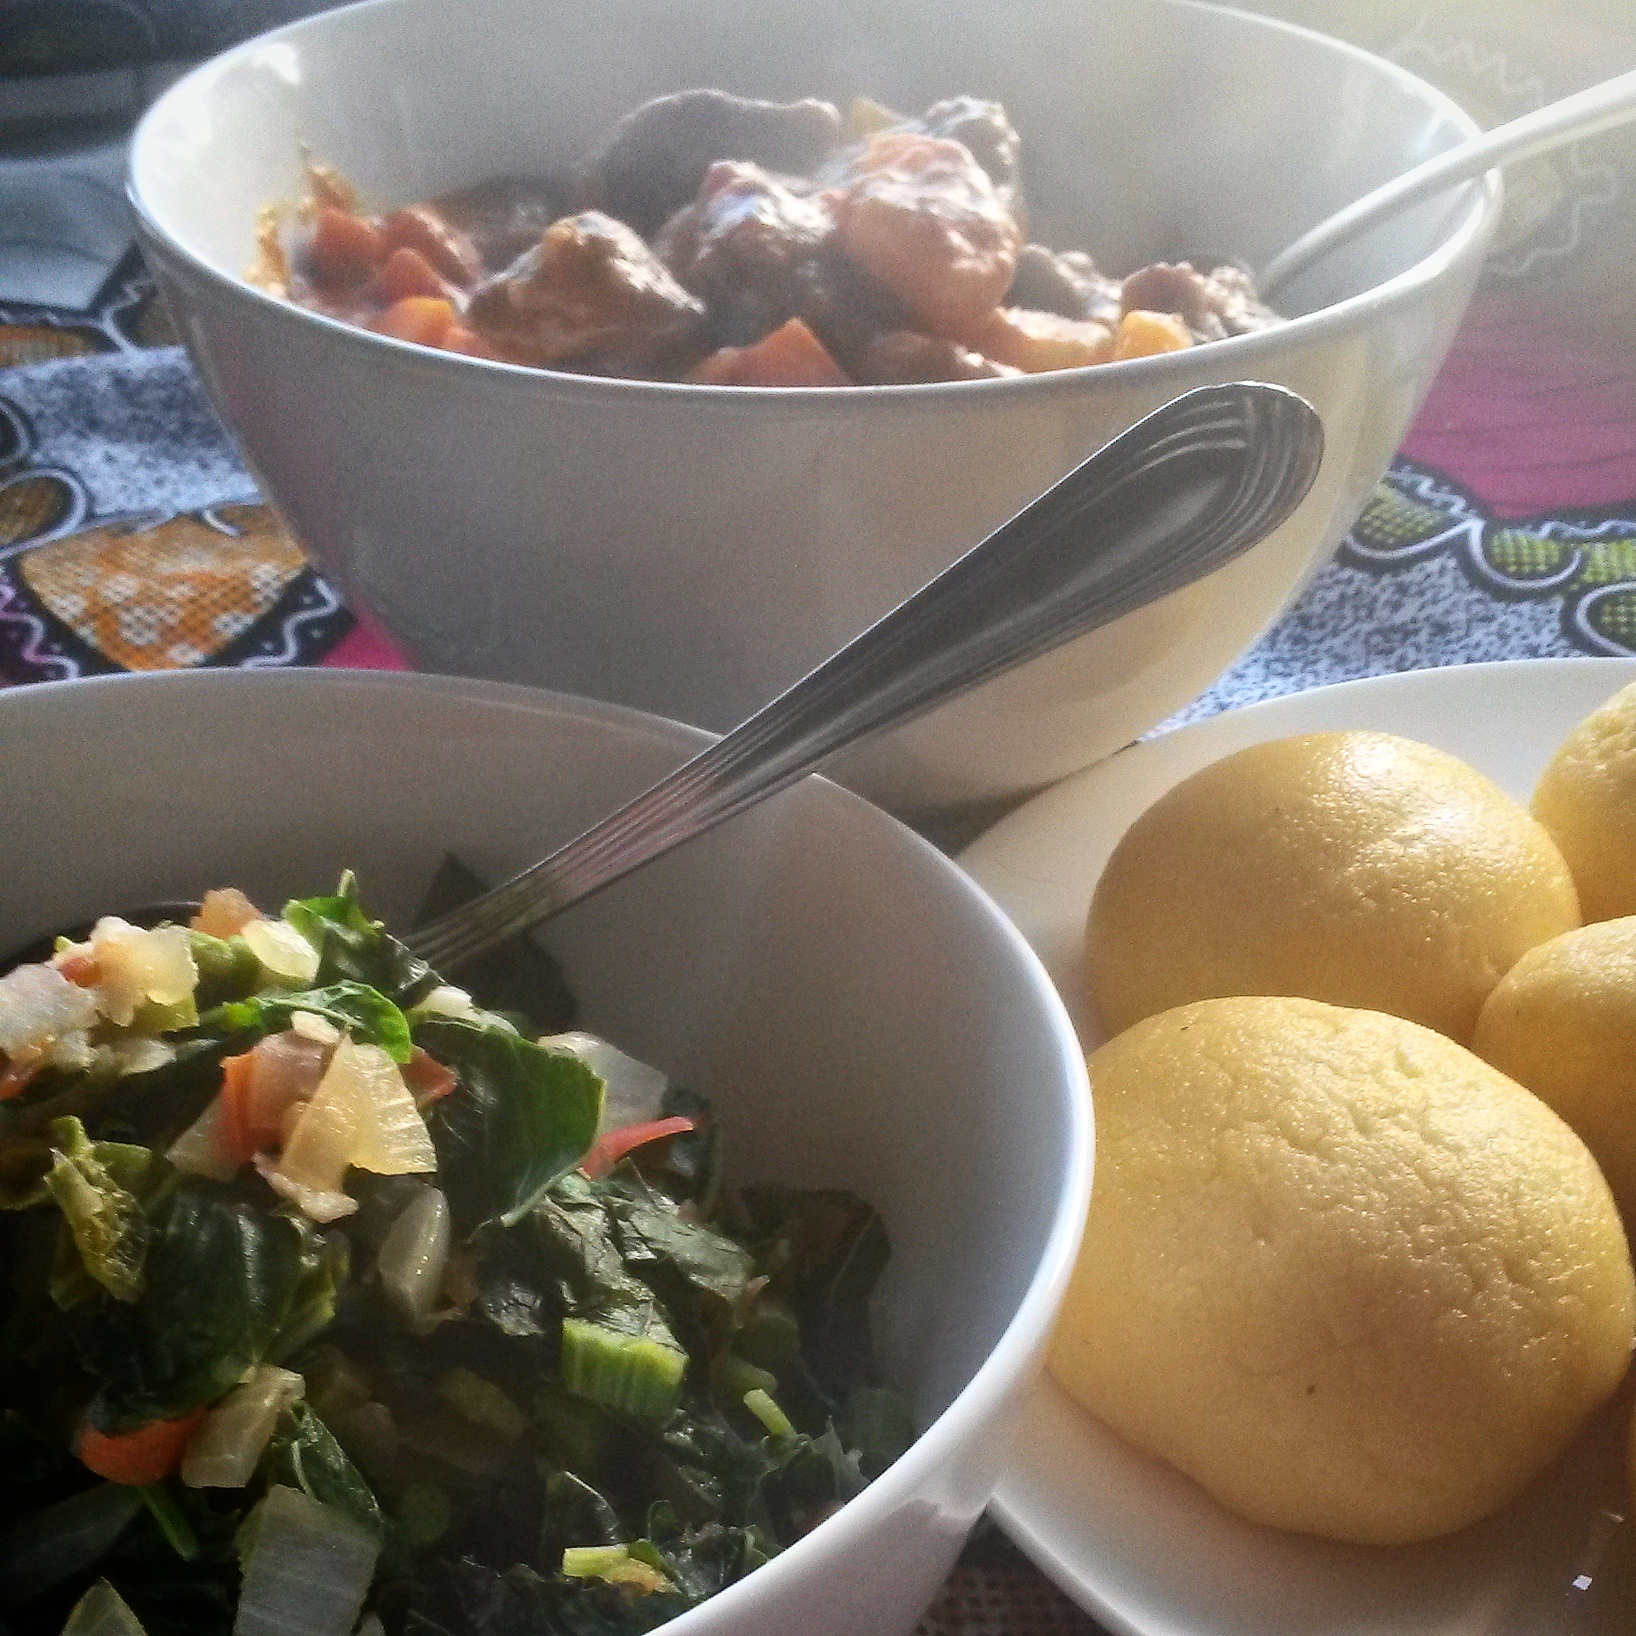 13 African Recipes: Making Fufu The Congolese Way